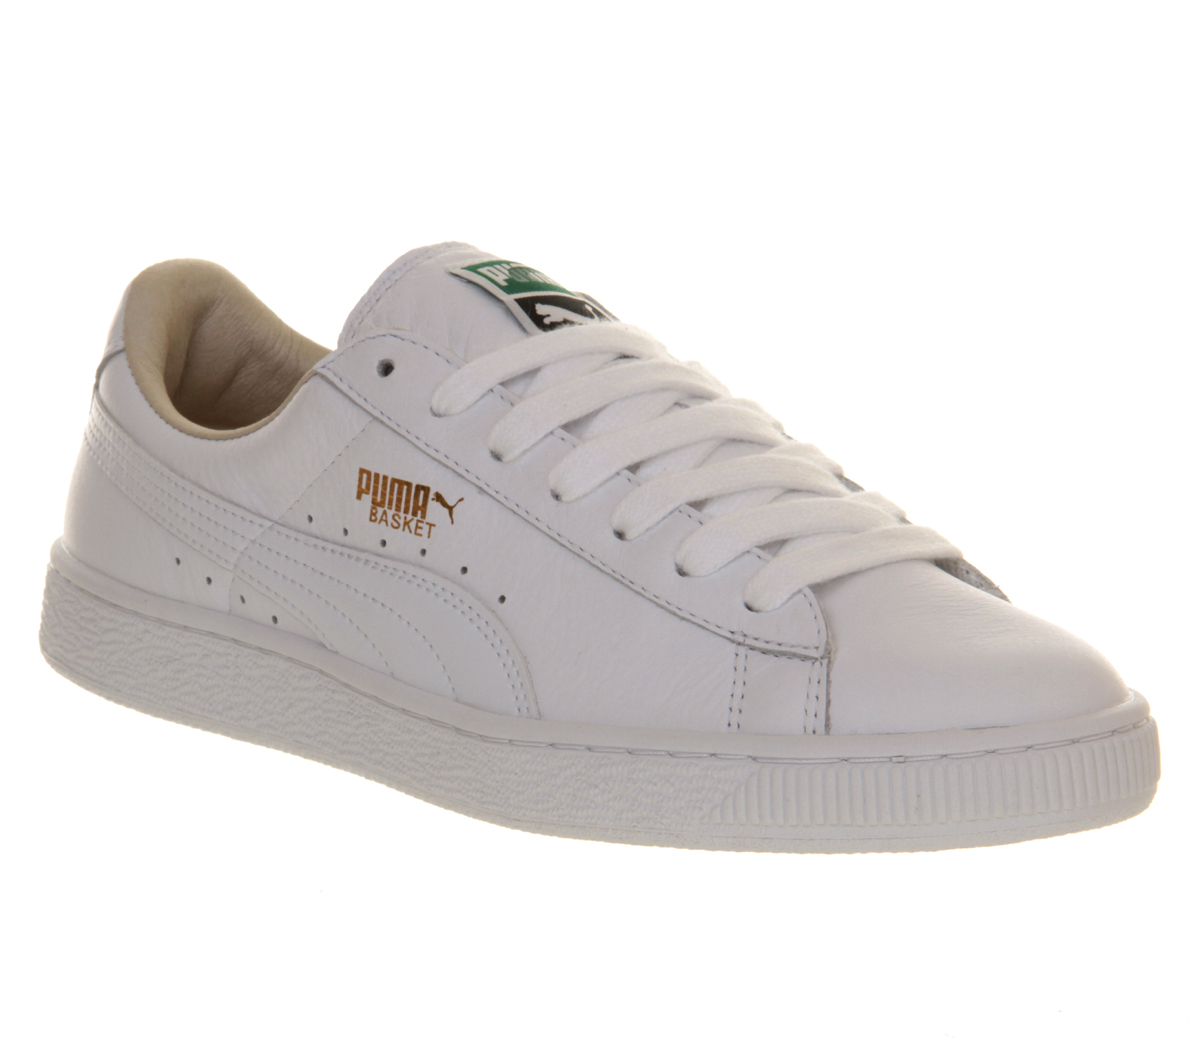 puma basket leather trainers